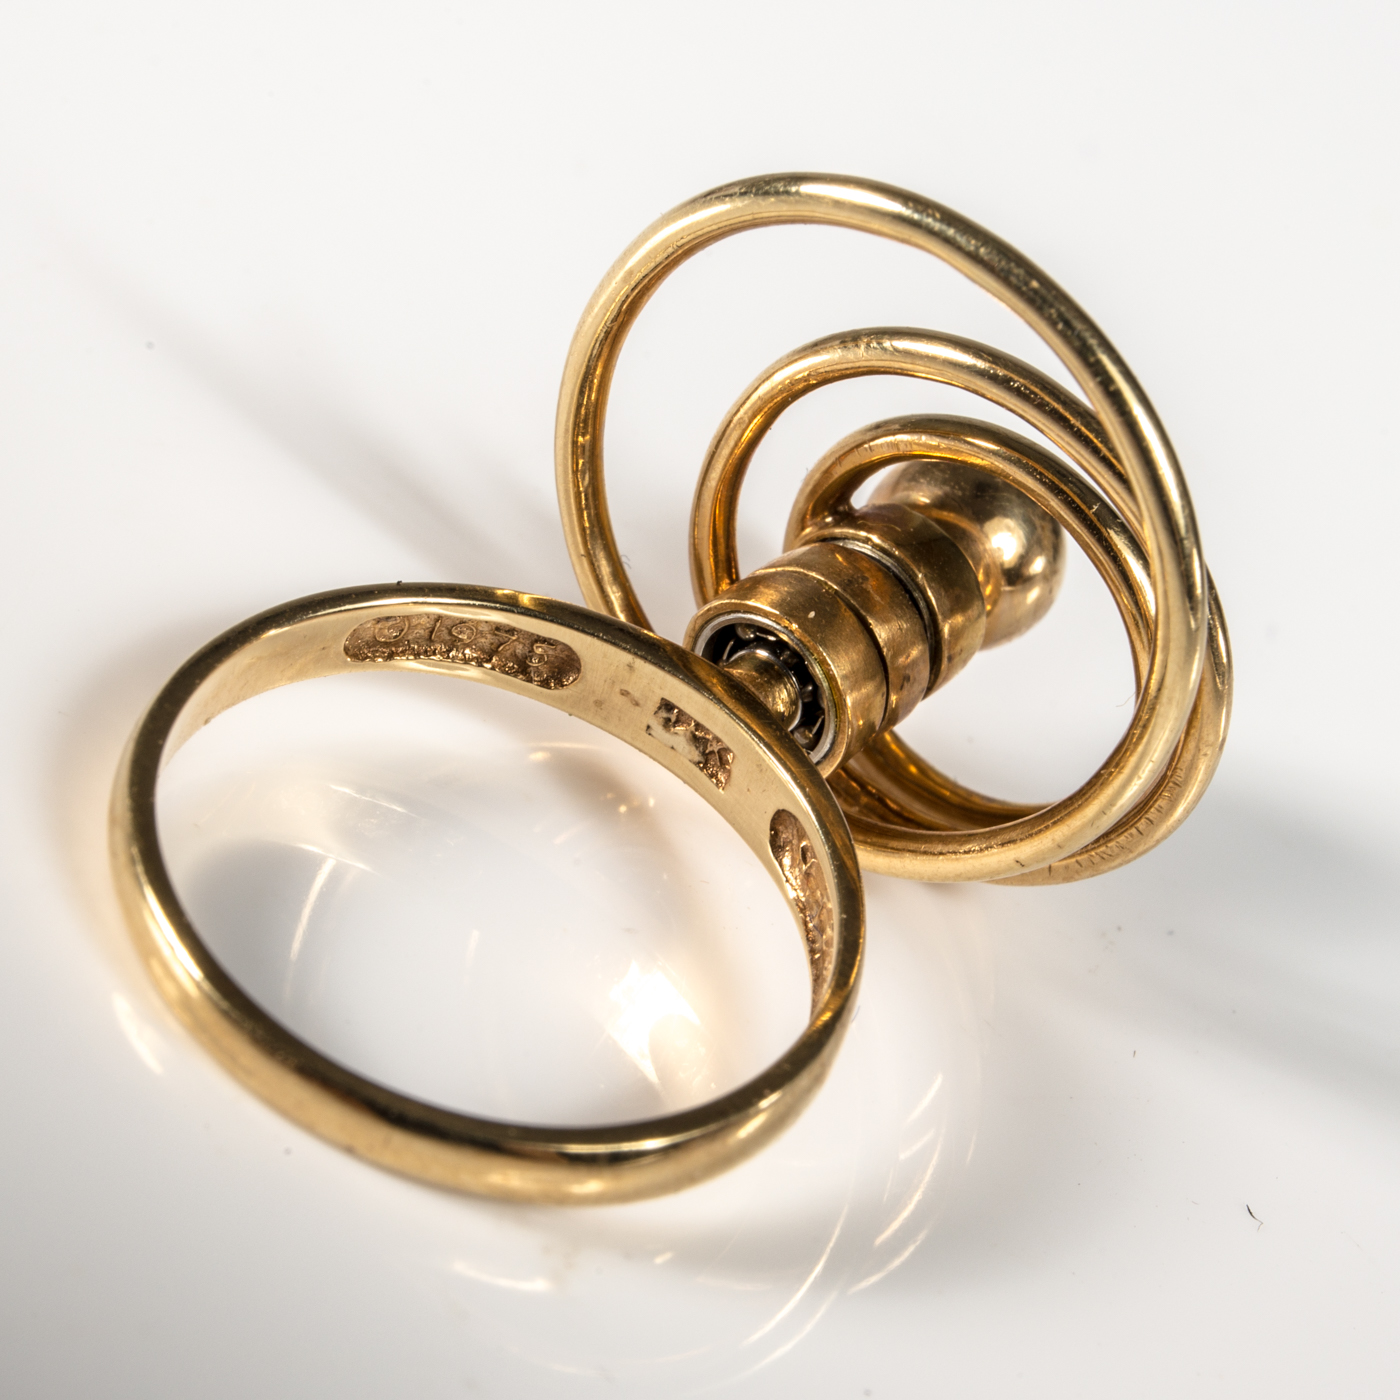 Swinger ring by teufel you